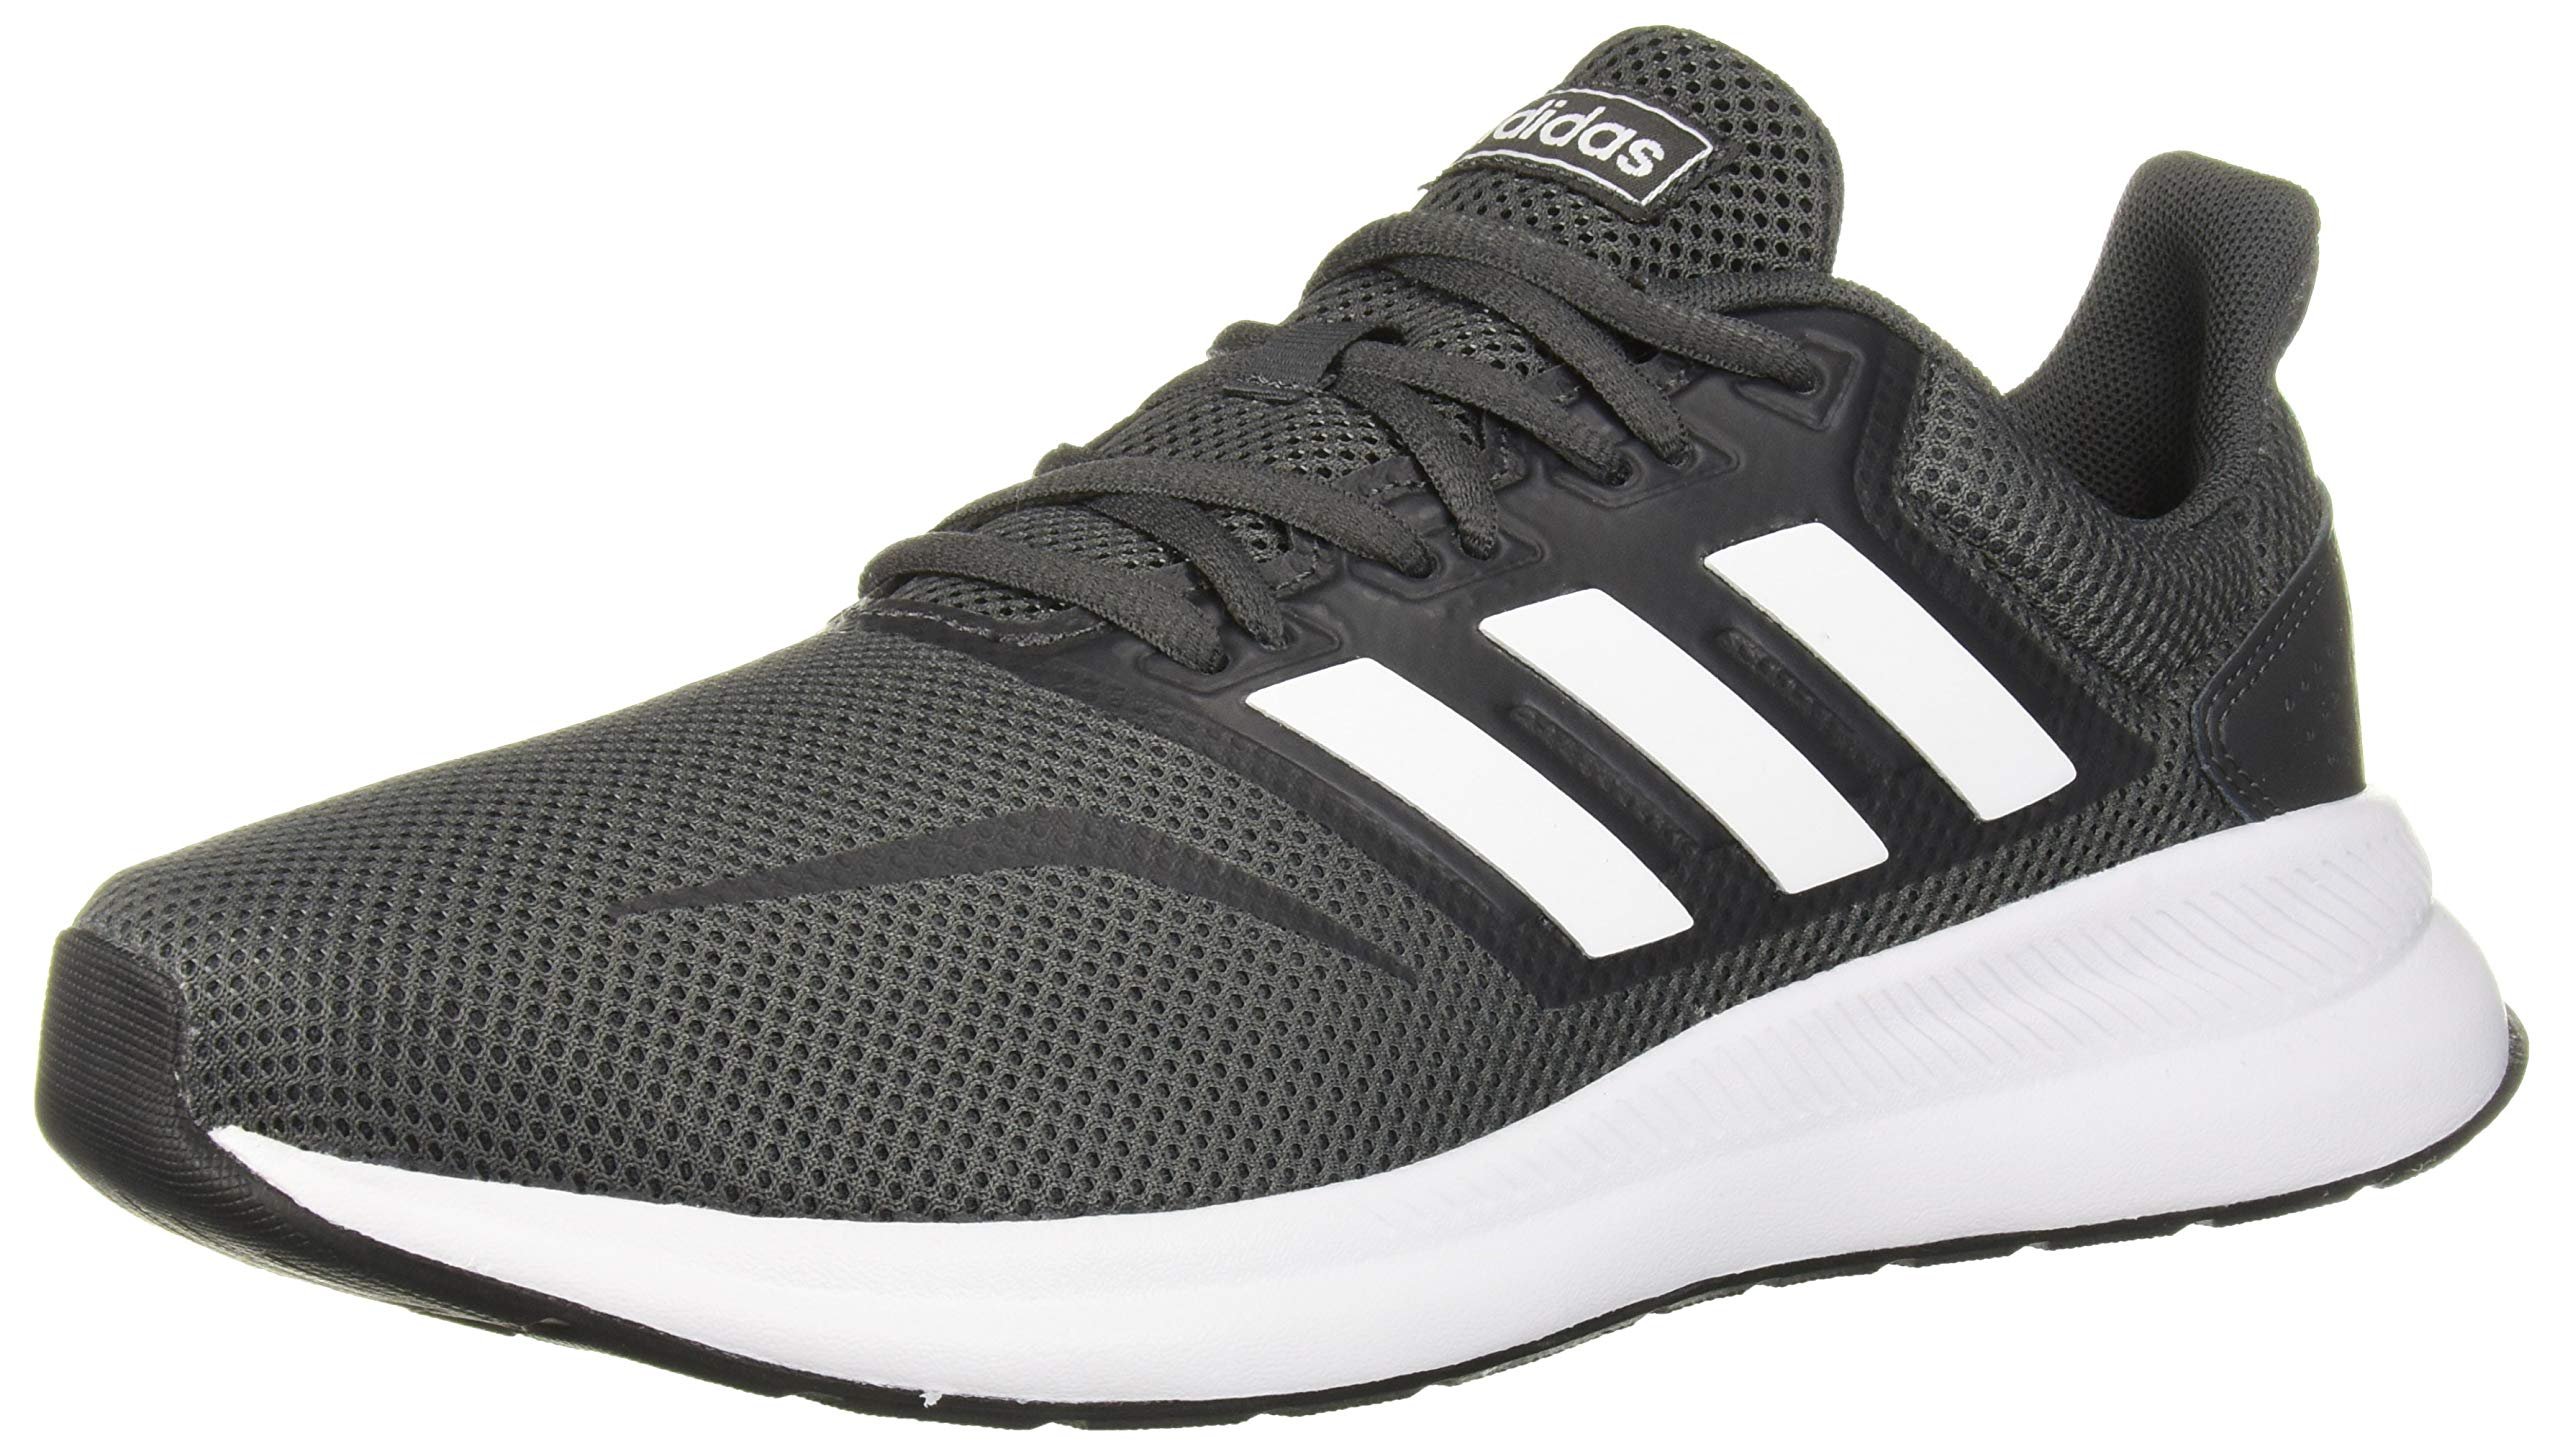 adidas Men's RunFalcon Wide Running Shoe, Grey/White/Black, 9.5 W US by adidas